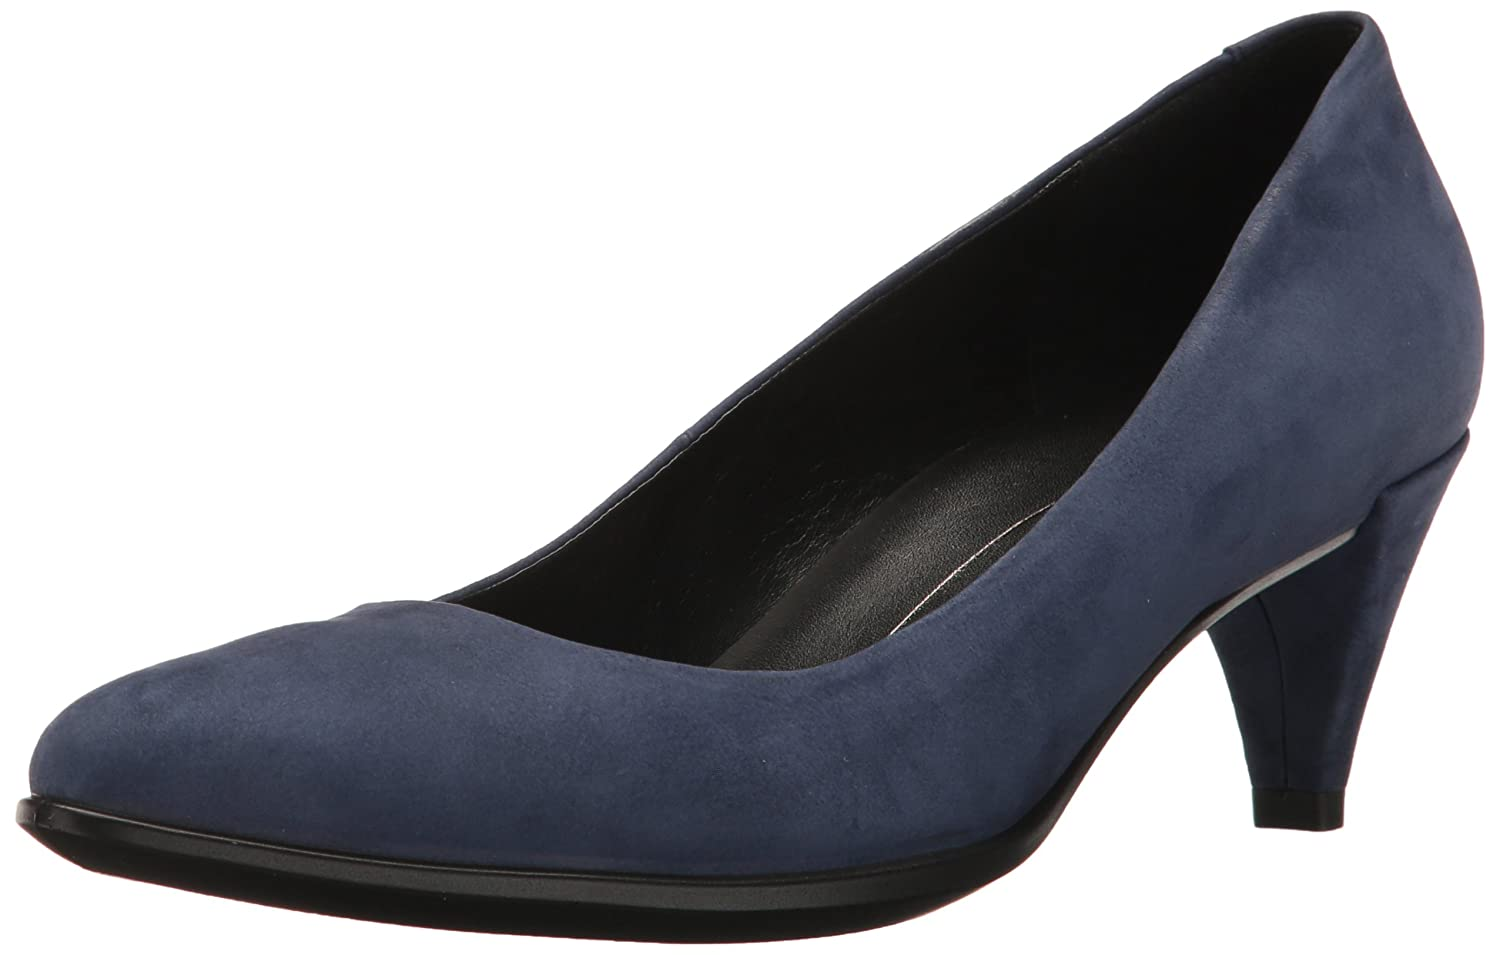 bluee Iris ECCO Womens Shape 45 Sleek Dress Pump